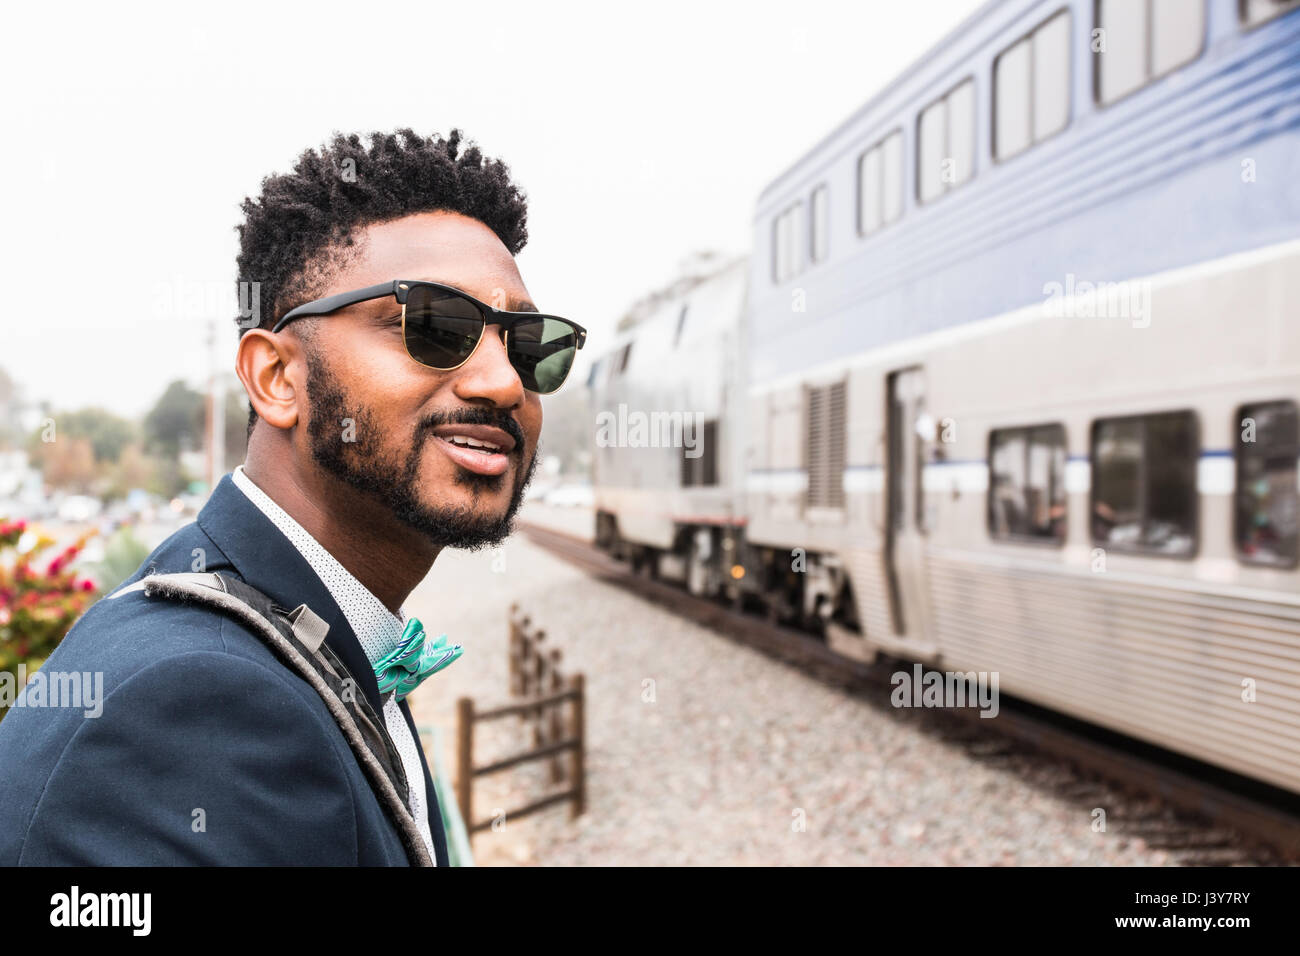 Young businessman in bow tie watching train arrive at platform - Stock Image